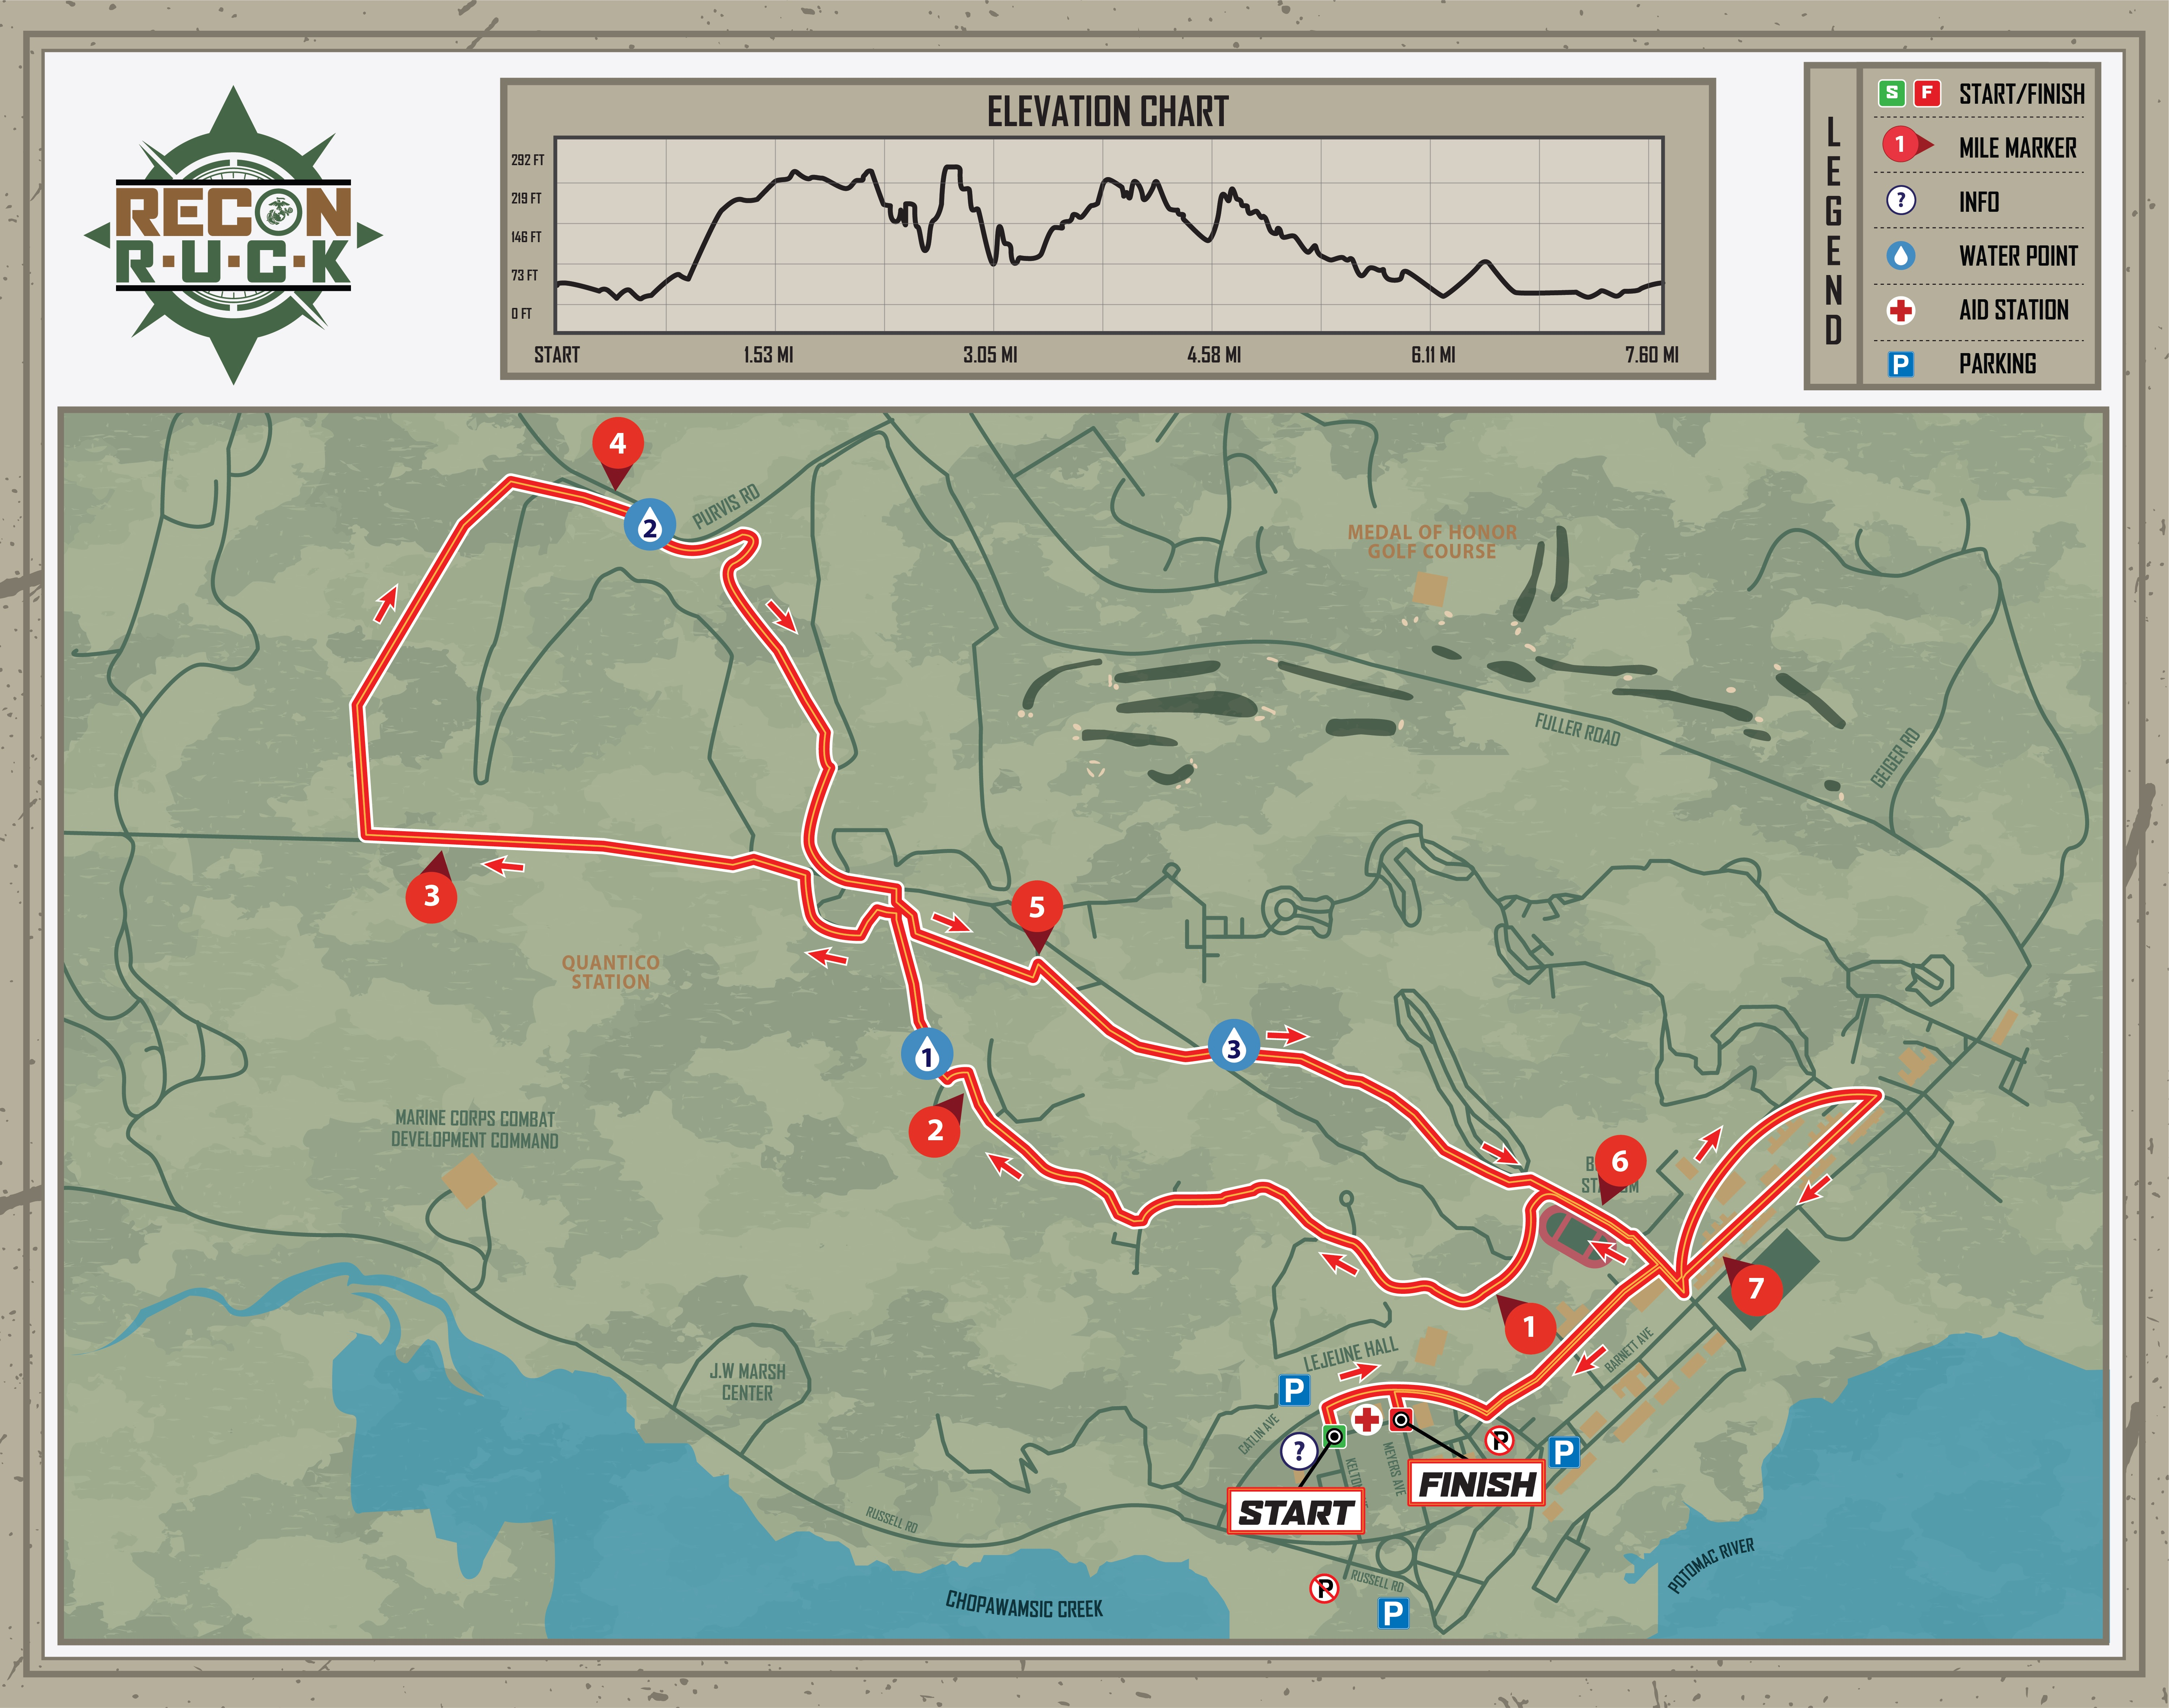 Recon Ruck Course Map